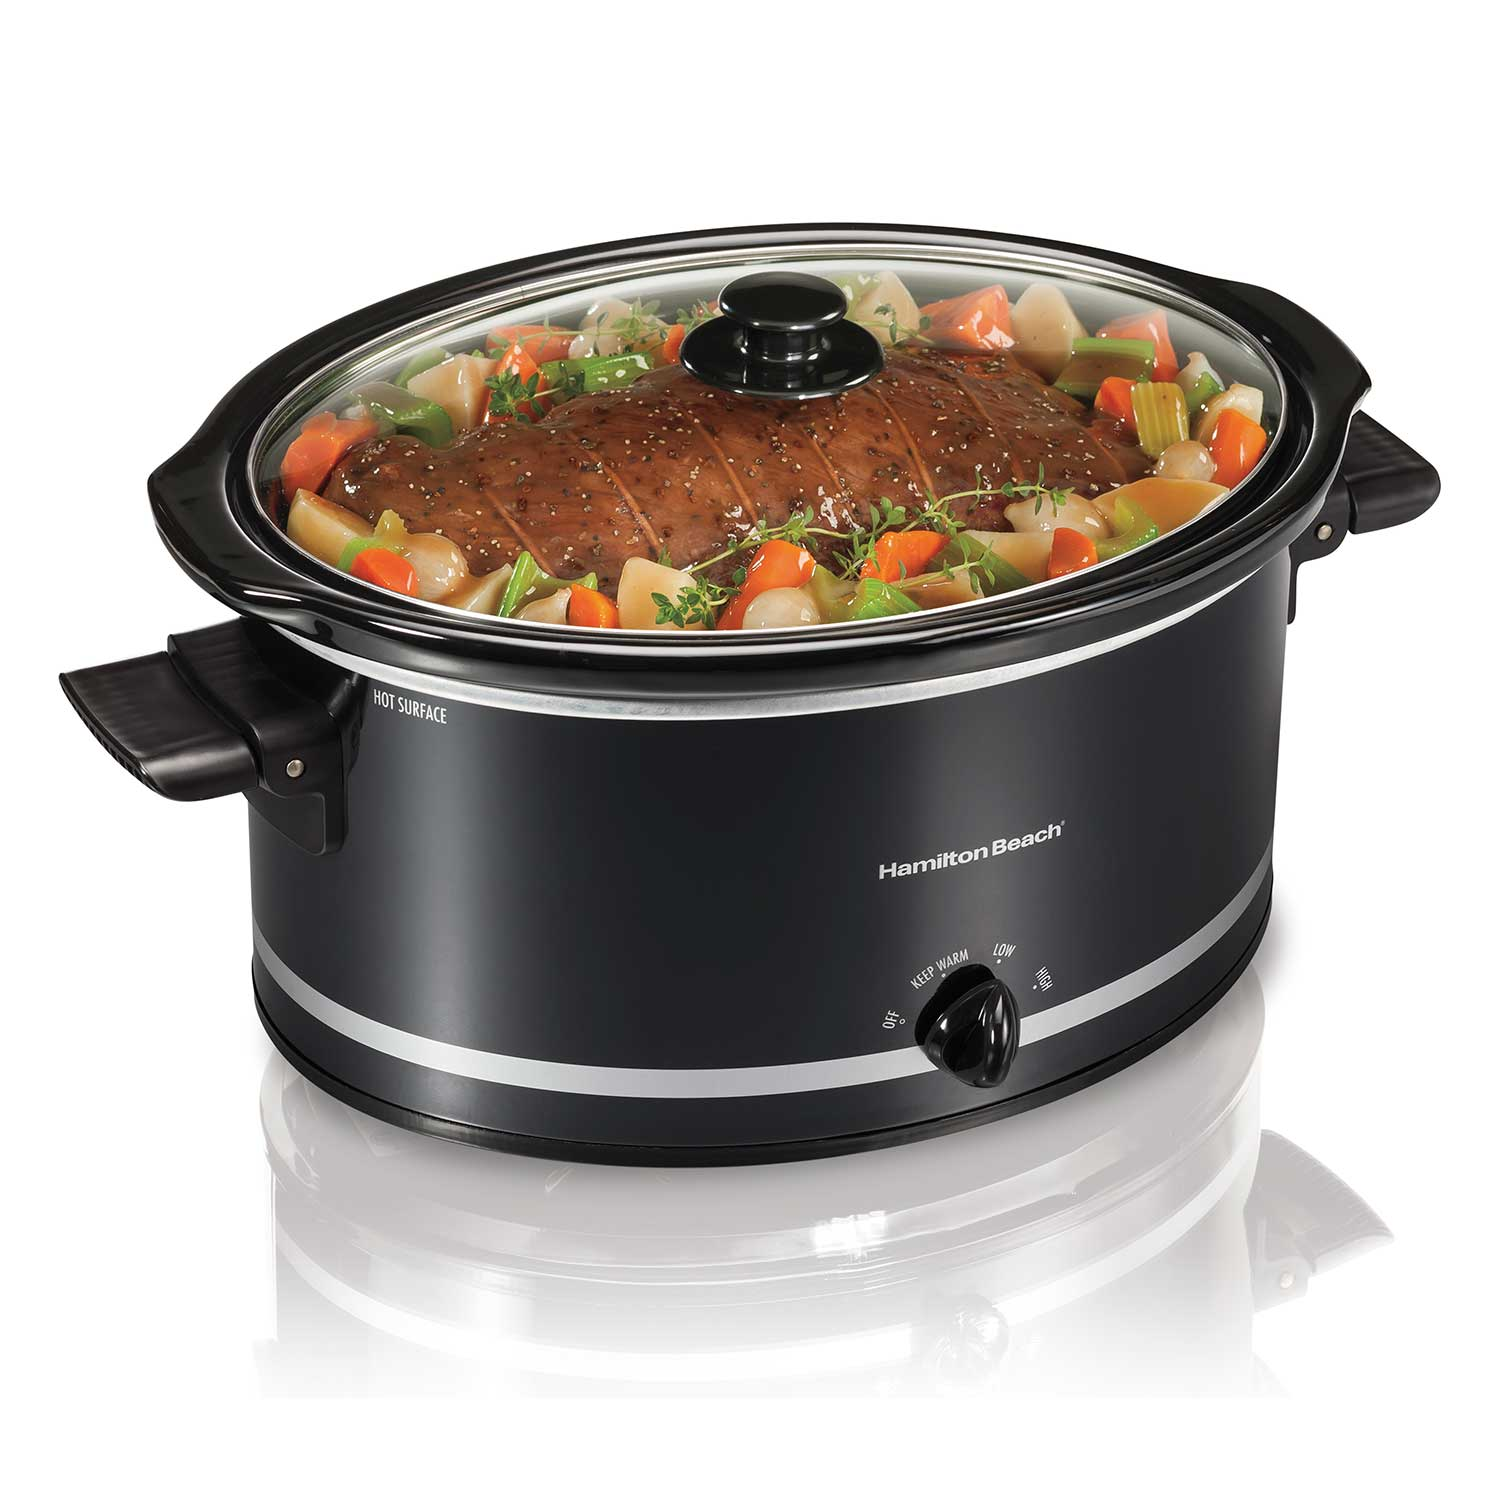 8 Quart Oval Slow Cooker (33185)